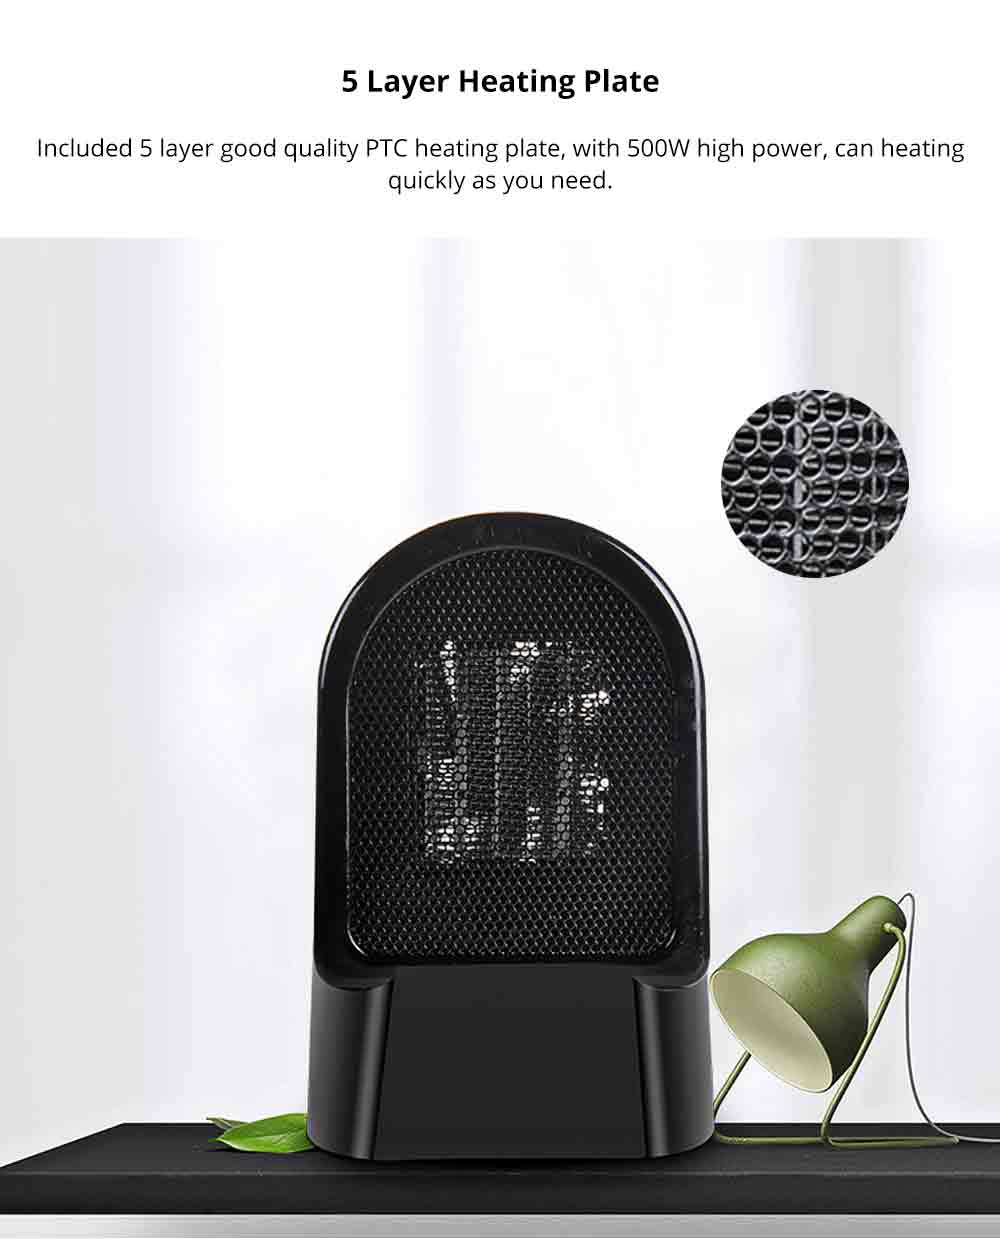 Handy Heater - Portable Mini Furnace, 500W High Power Small Winter Fan Hot Air Warmer for Home Office 2